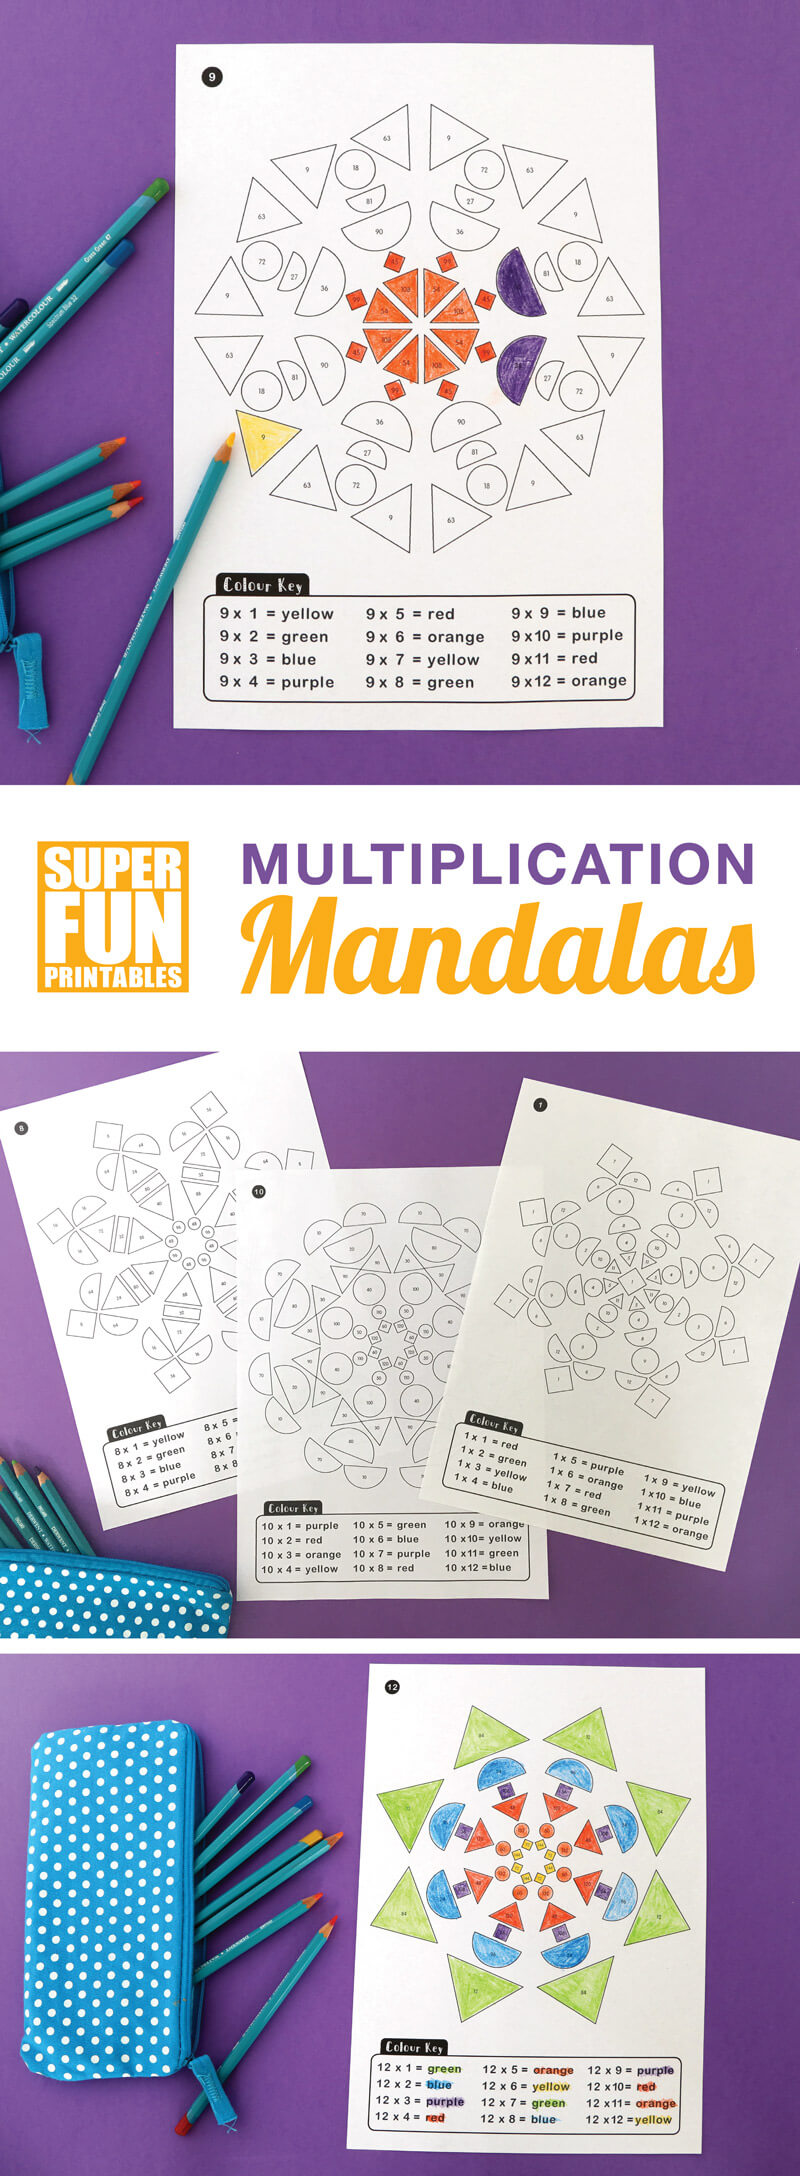 Printable multiplication mandalas, a non-stressful and relaxing way for kids to practice and reinforce their times tables #timestables #multiplication #math #geometricshapes #patterns #mandalas